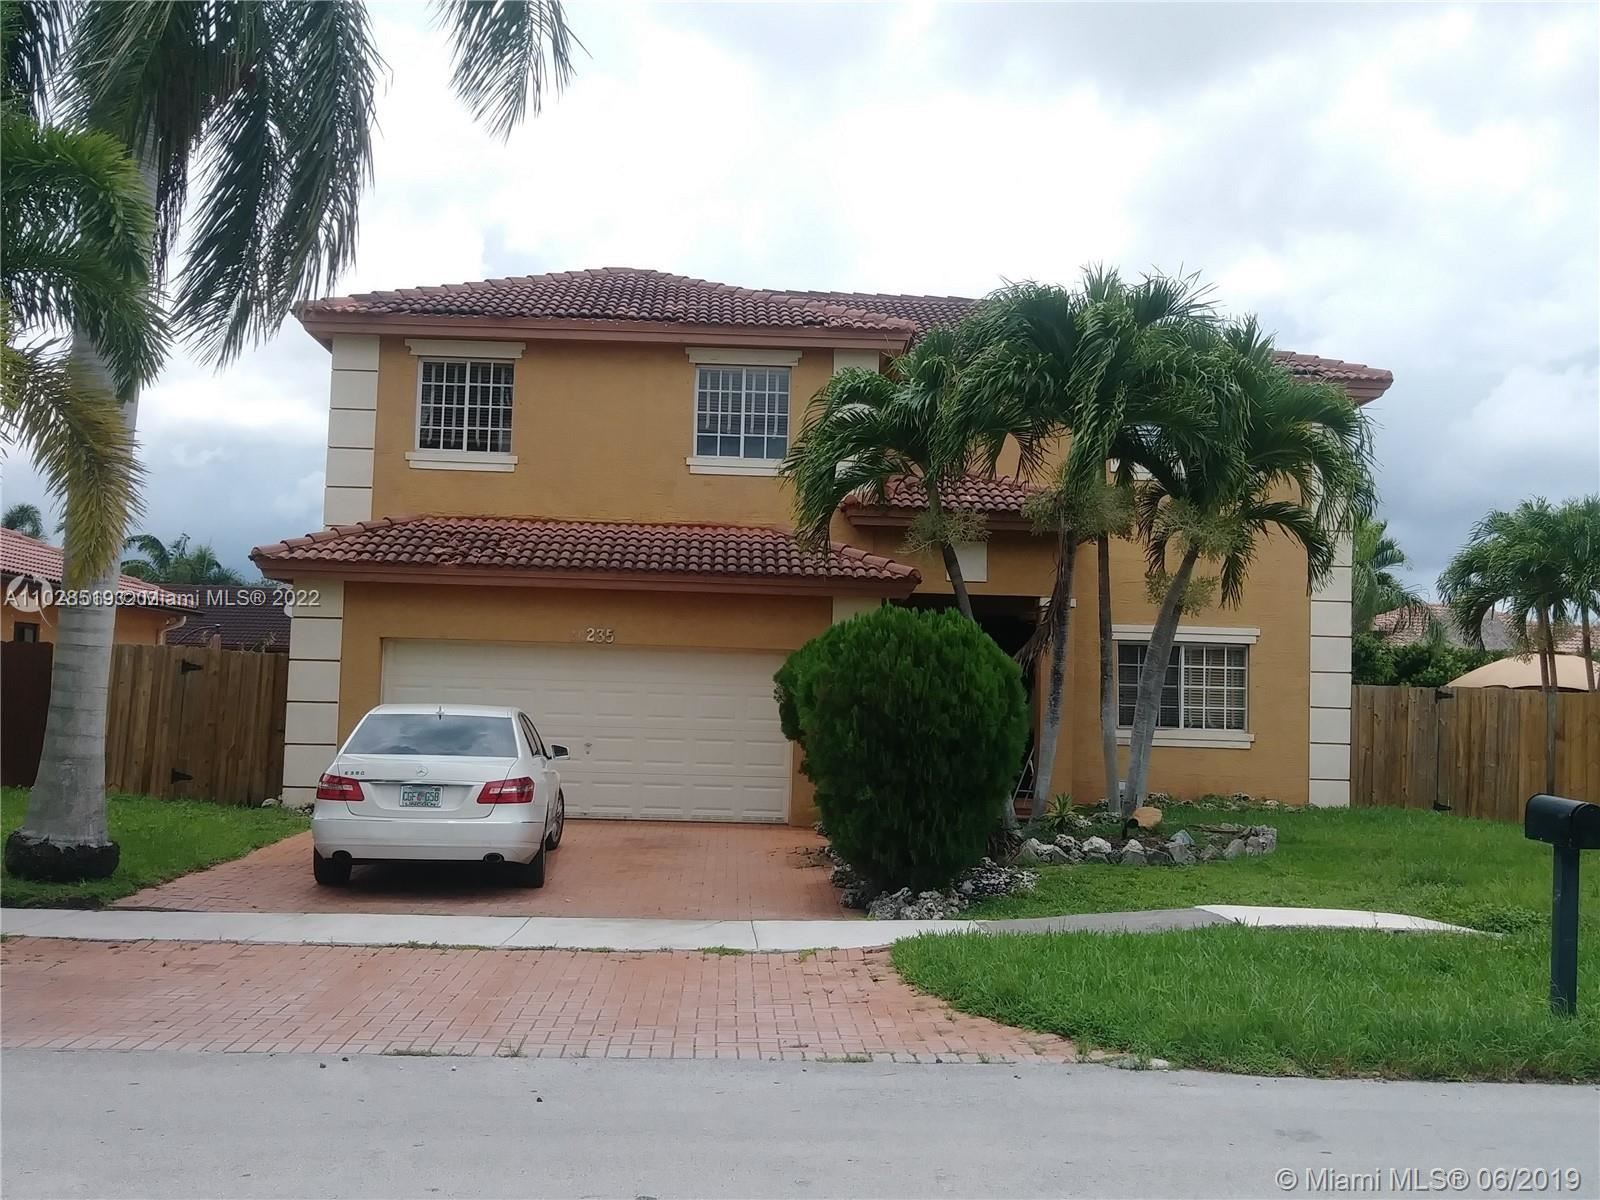 14235 SW 294th St, Homestead, FL 33033 - #: A11028519